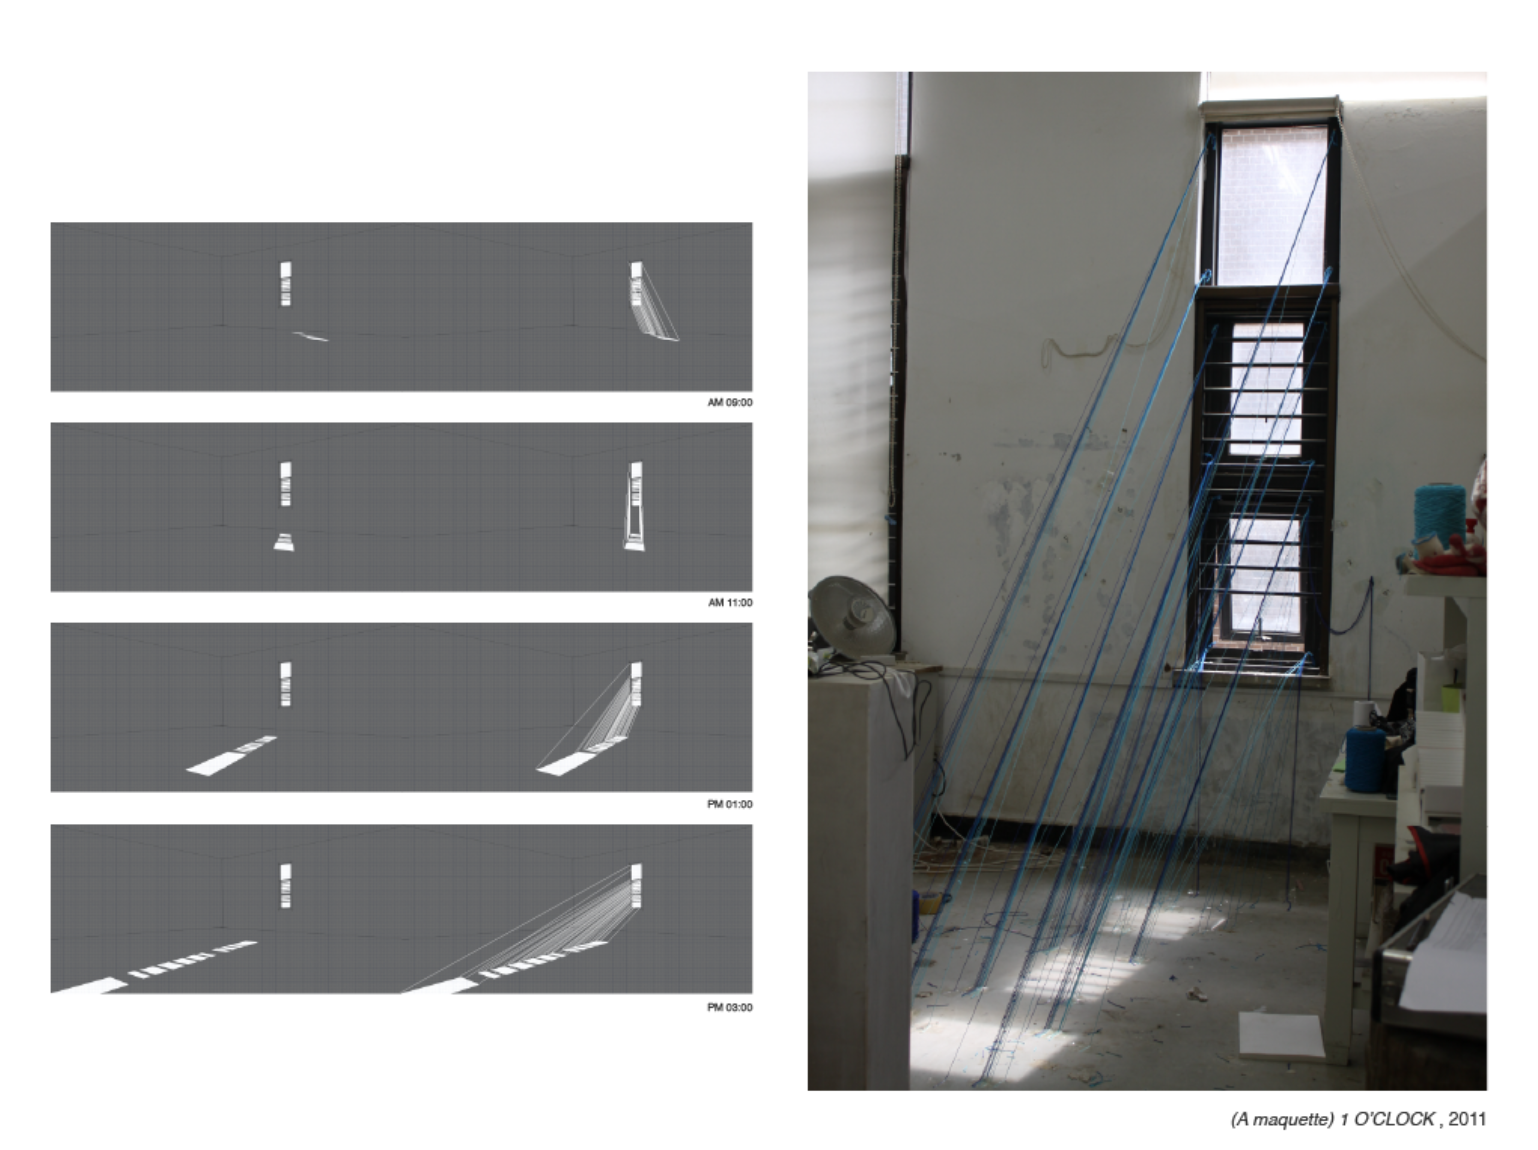 (Left) This is a record of lights which came through the window in different time zones (Right) I started to specify appearances of lights through strings at 1 p.m. when the sunlight was the strongest of the day. This allowed lights which were not seen to become material objects.